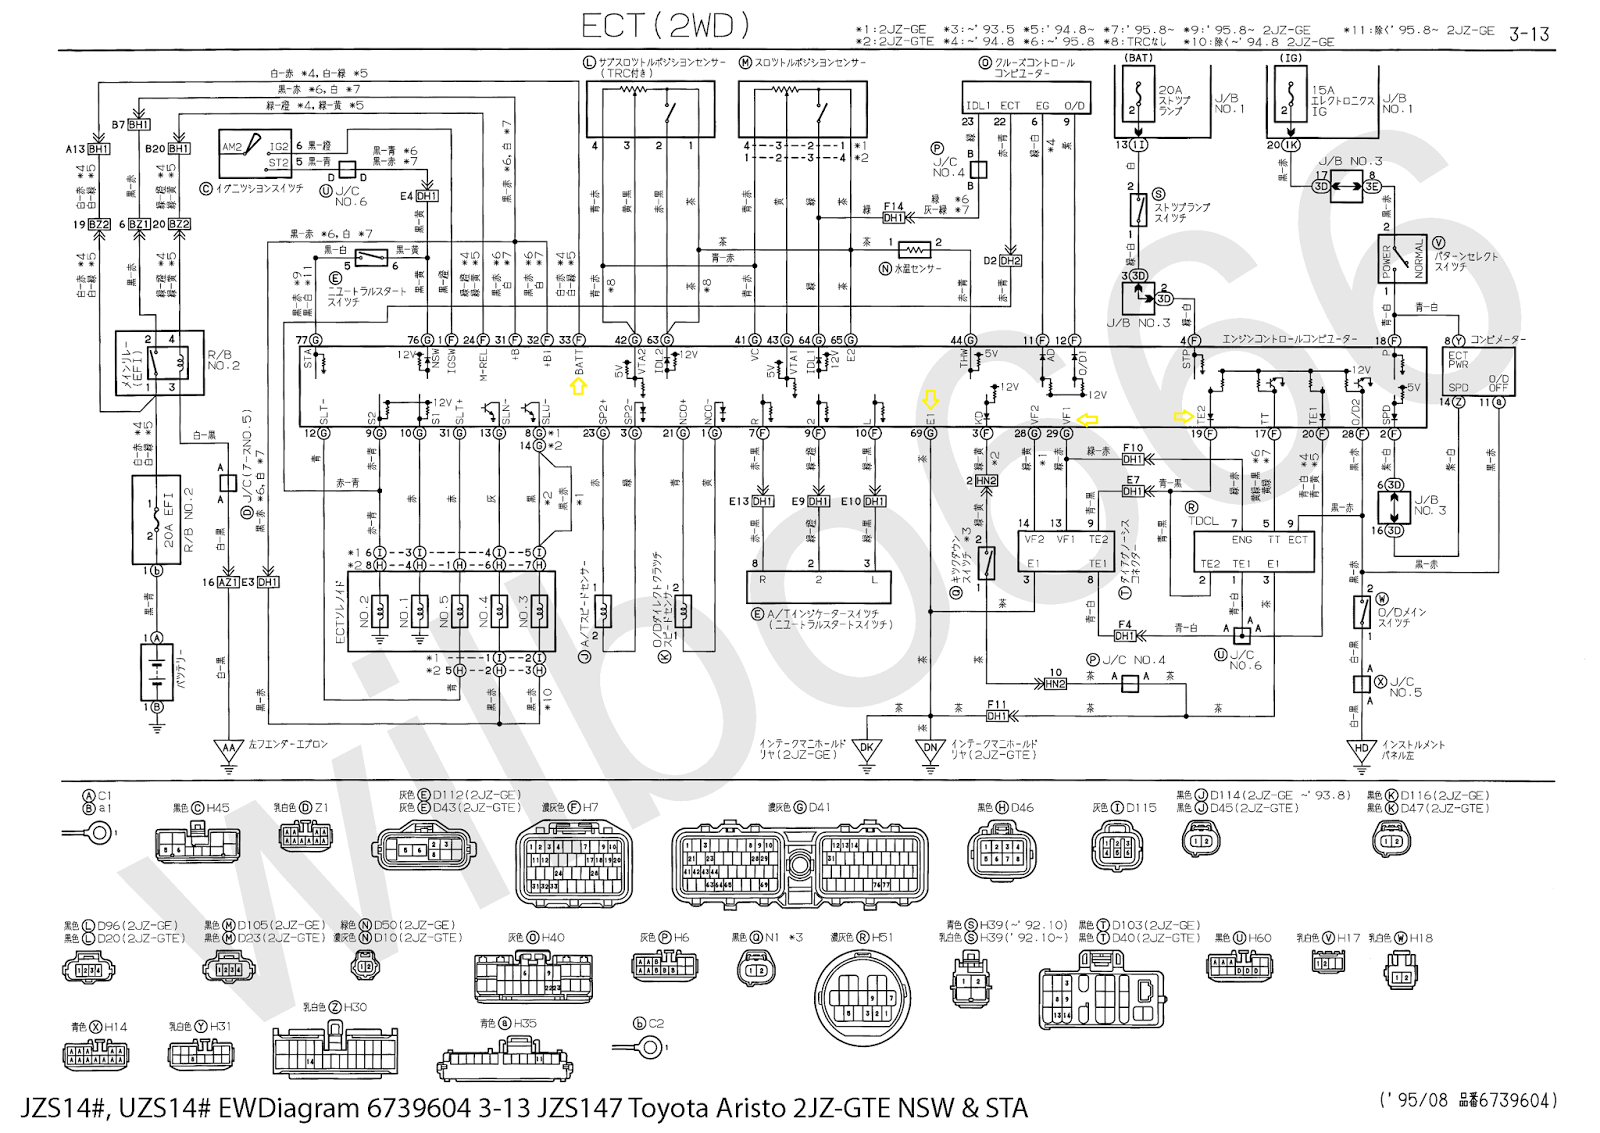 Early Non Vvti 2jz Gte Ecu Pinout From Aristo